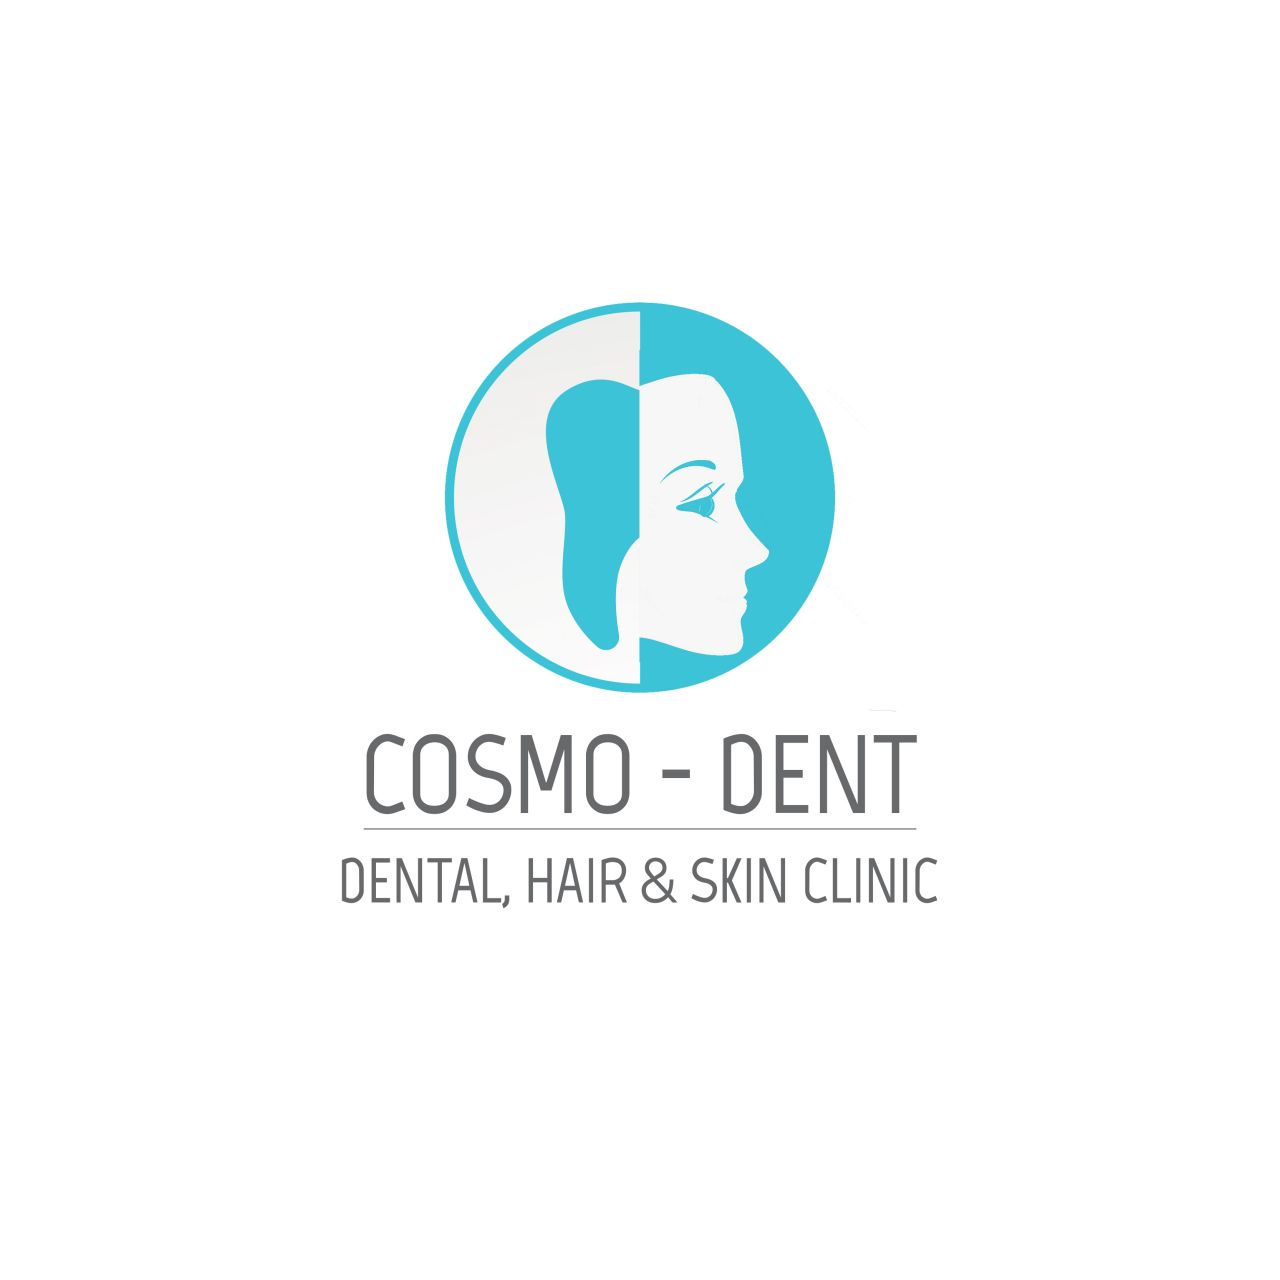 COSMO - DENT